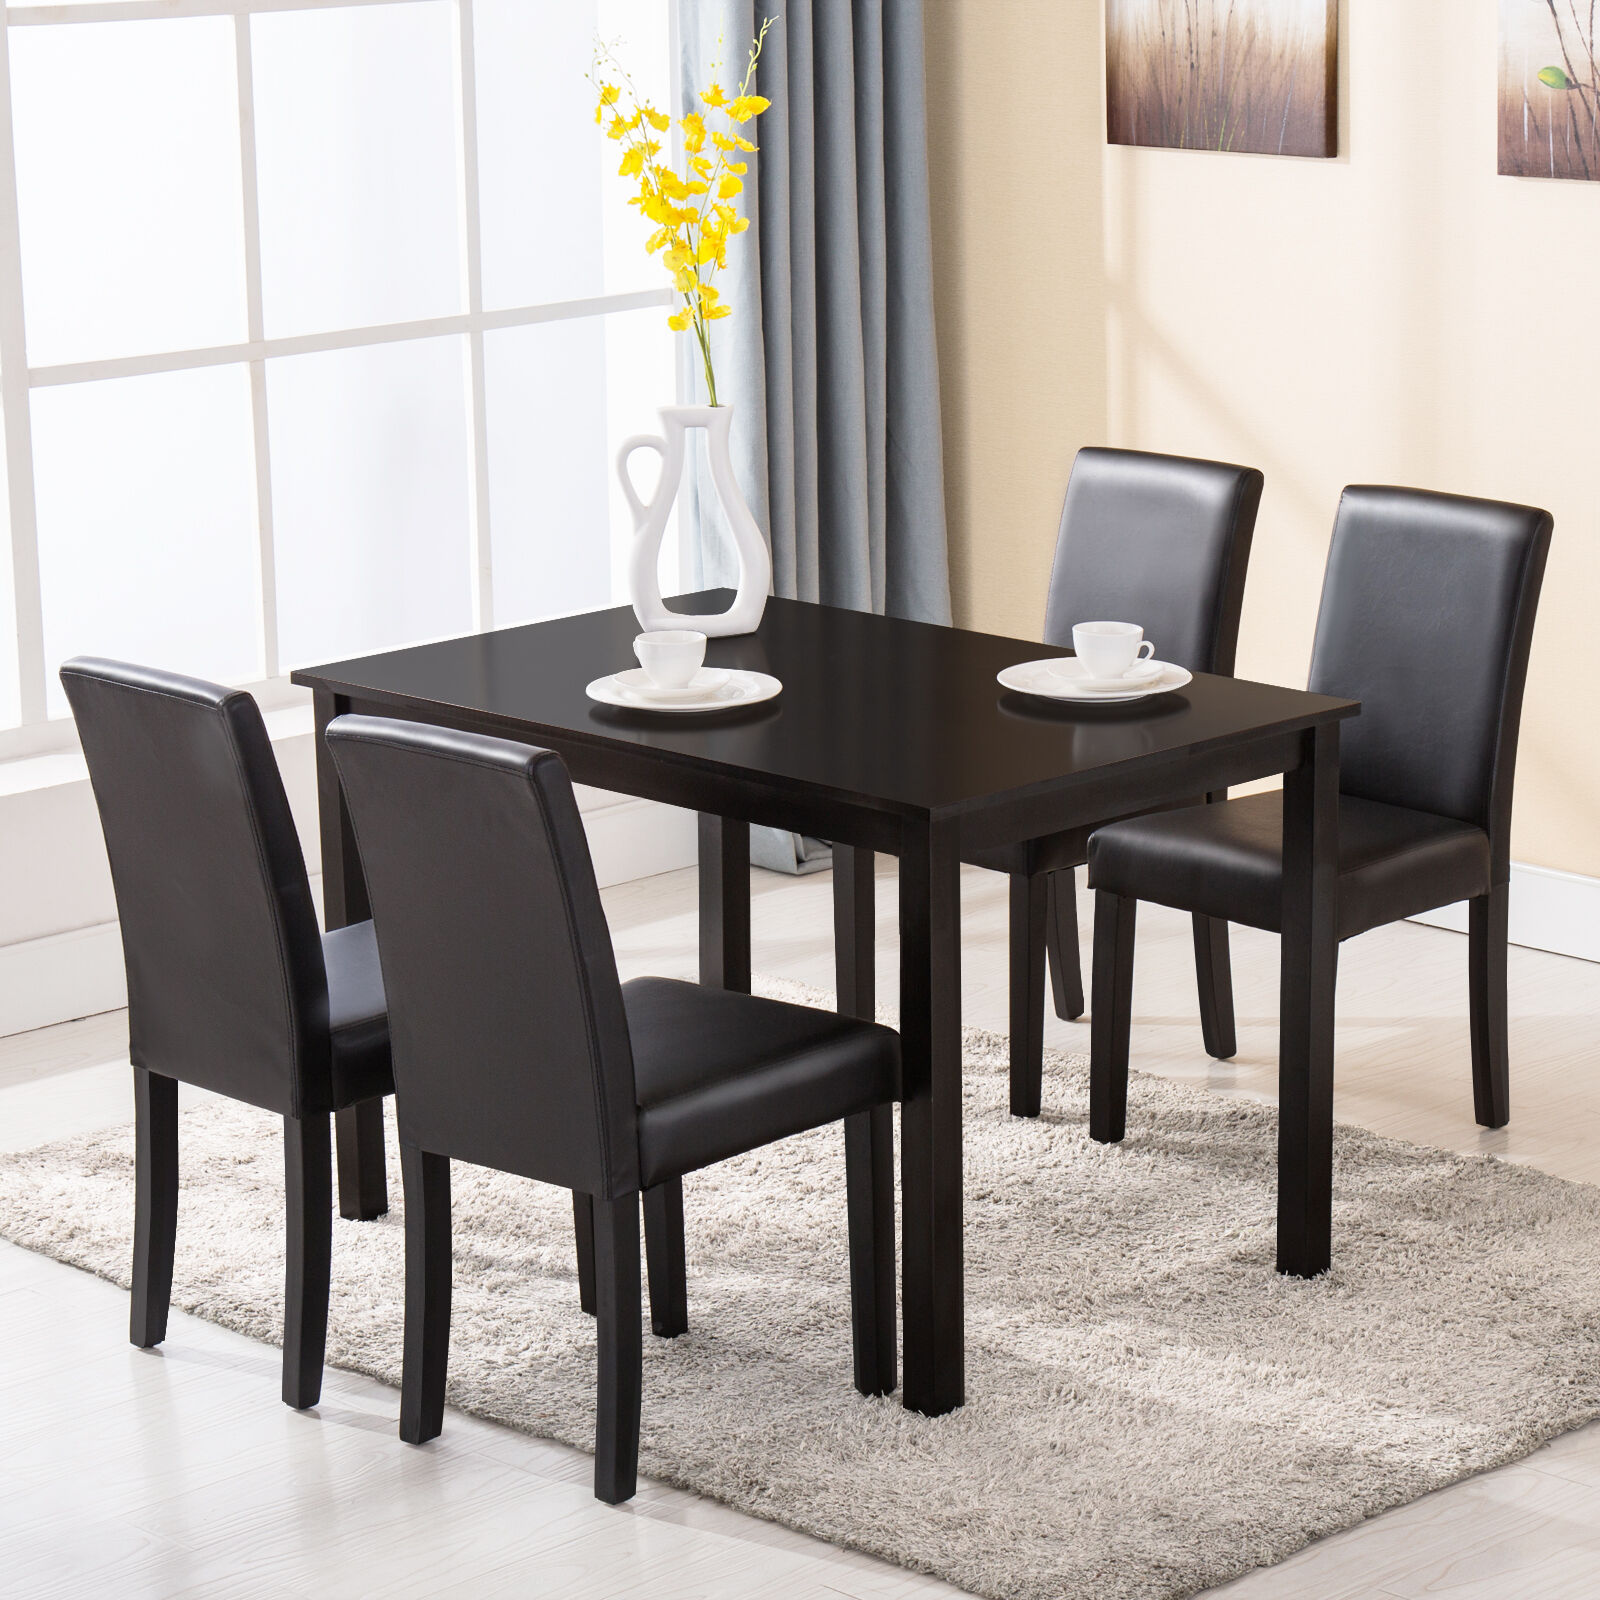 Dining Room Sets With Bench: 5 Piece Dining Table Set 4 Chairs Wood Kitchen Dinette